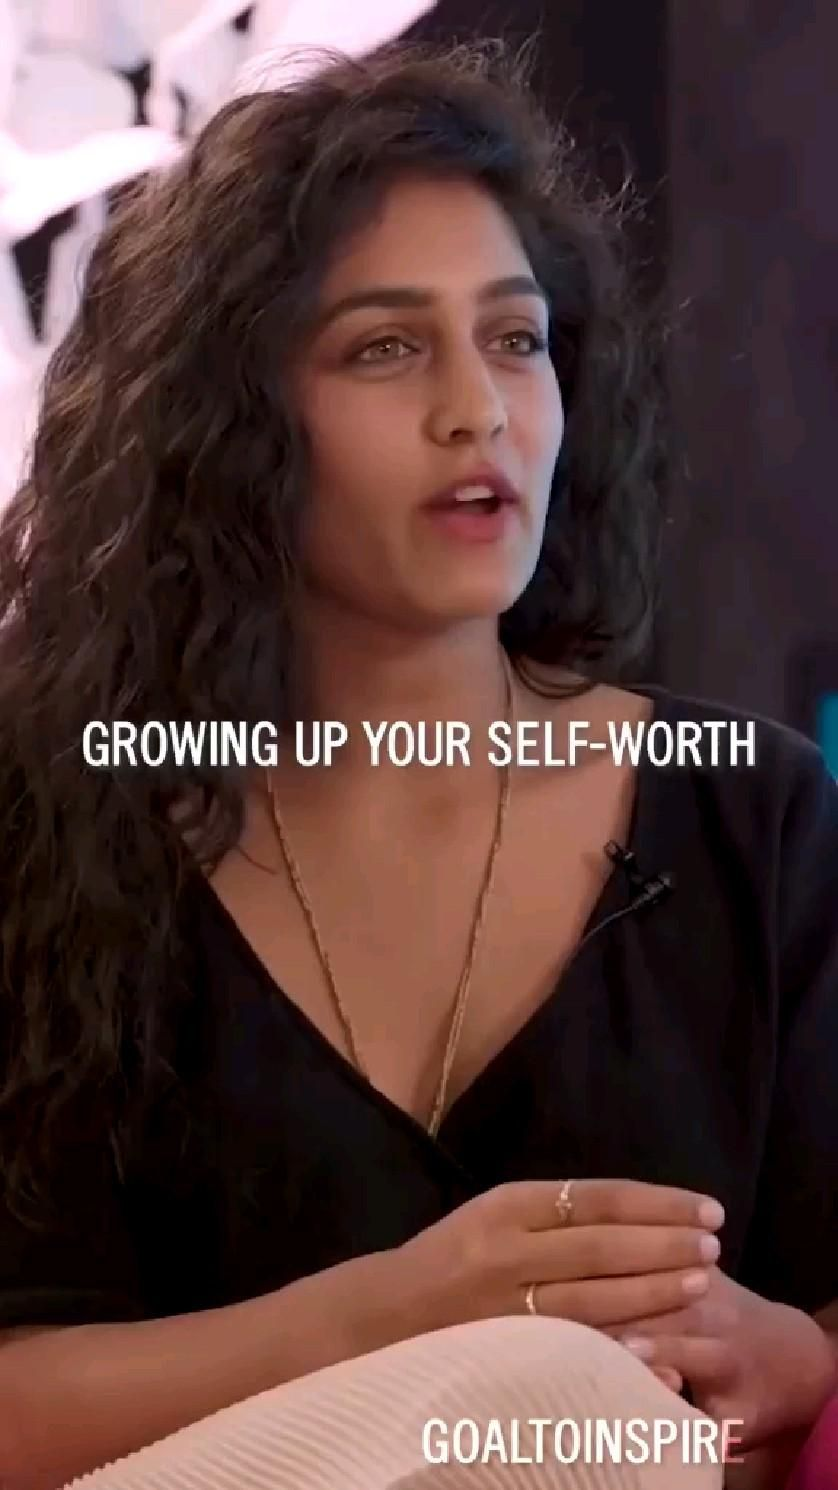 Growing up your self-worth...